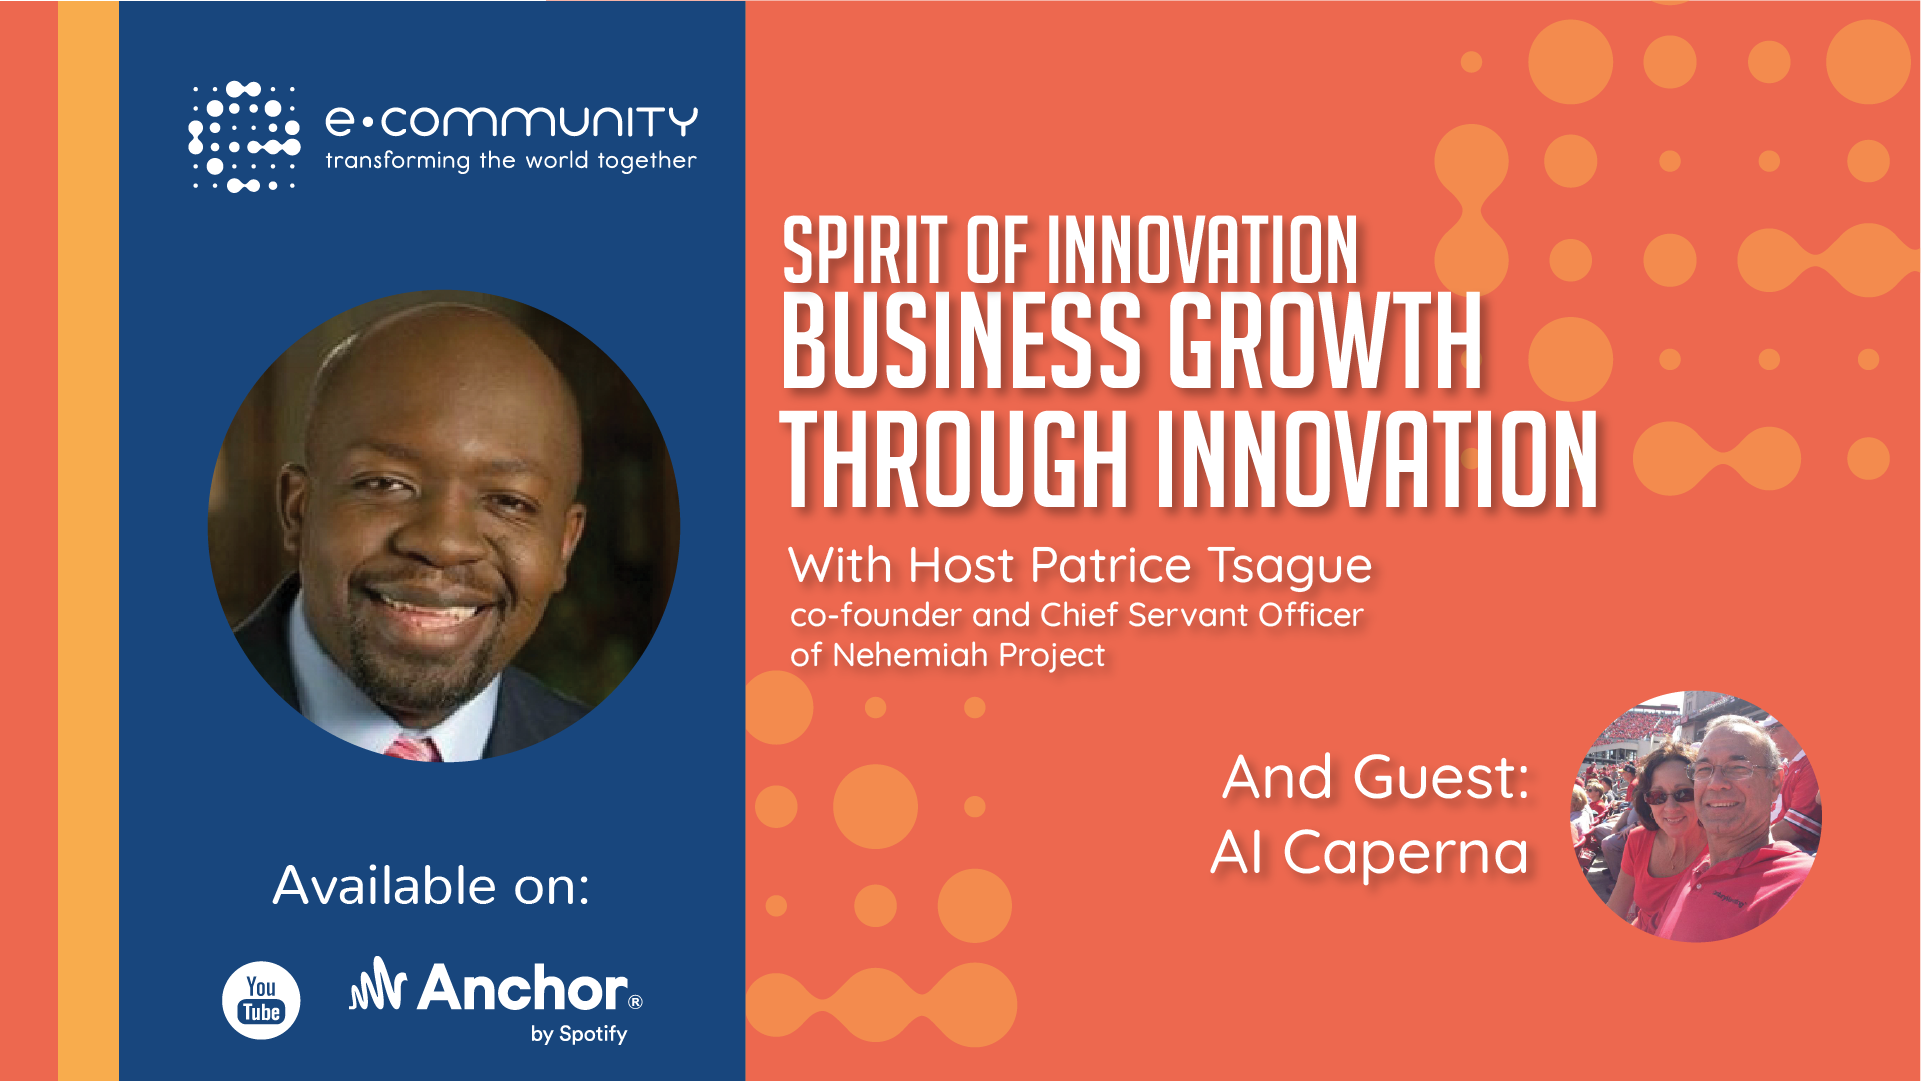 Business Growth through Innovation